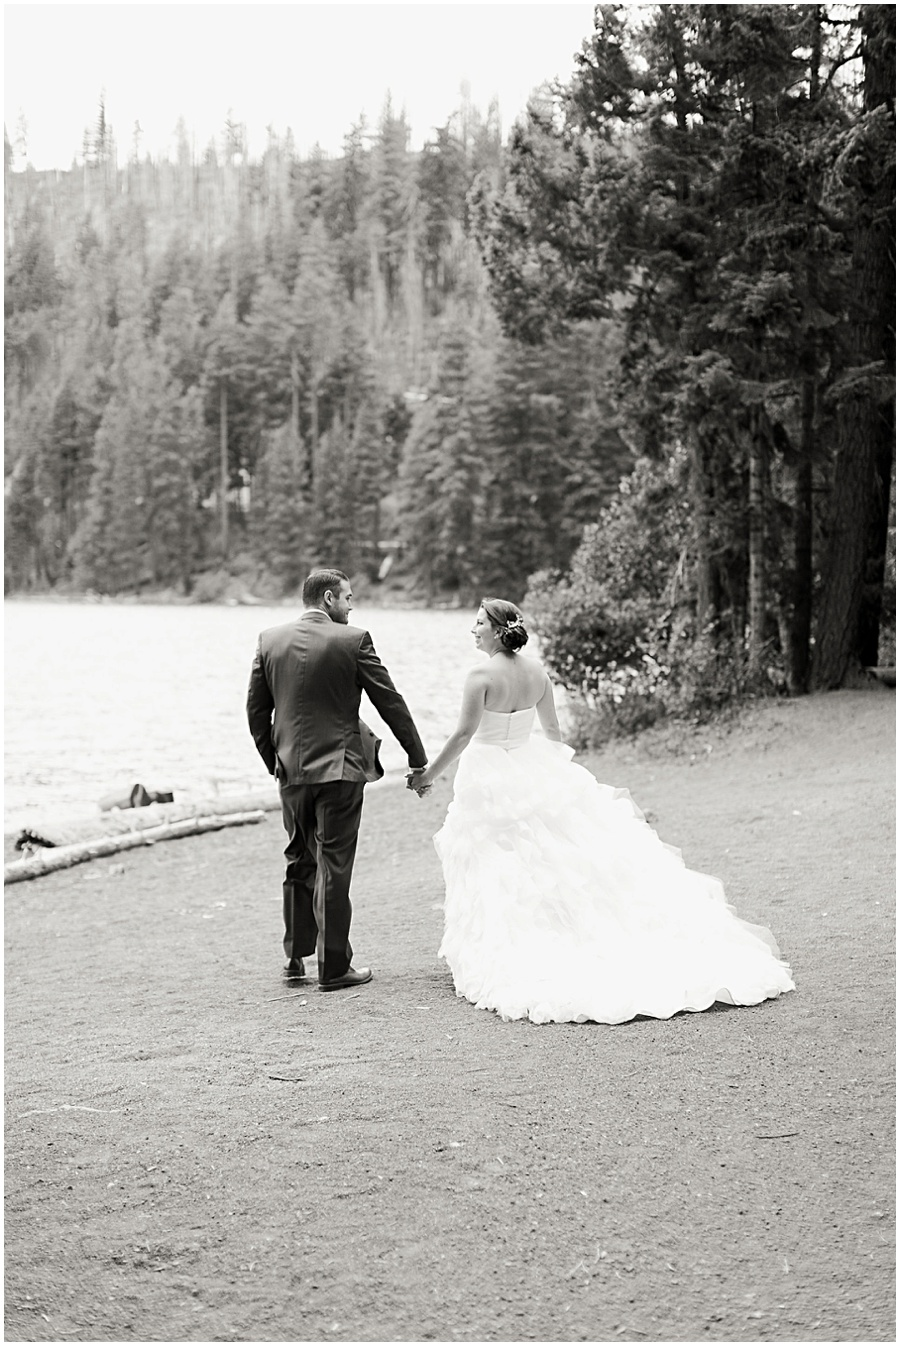 Olivia Leigh Photography | Destination Wedding Photographer | Oregon Wedding Photography | Central Oregon Wedding